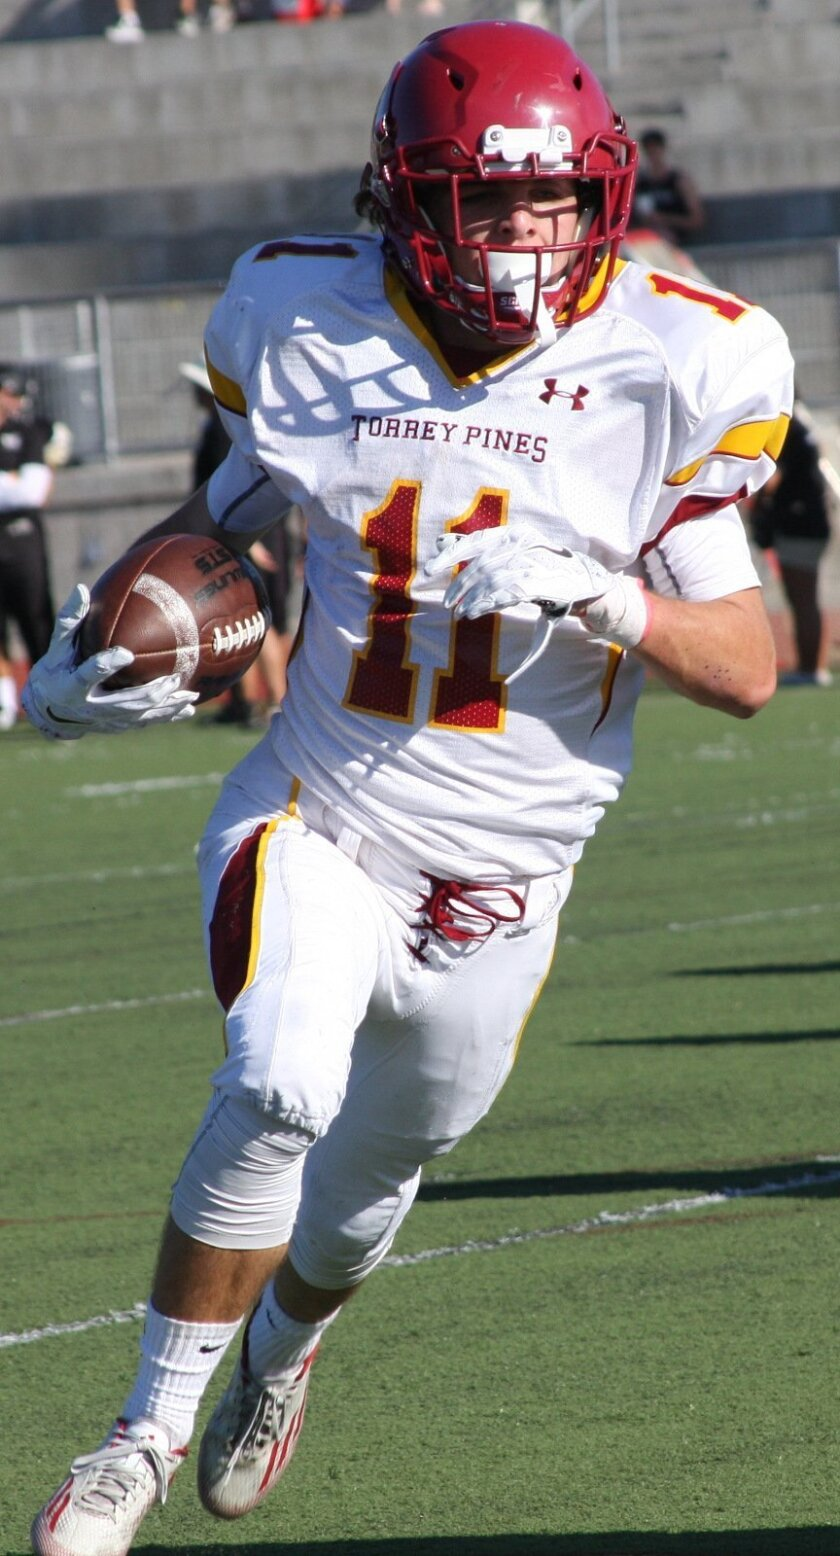 Quarterback Chris Temby passed for 100 yards. Photo by Anna Scipione